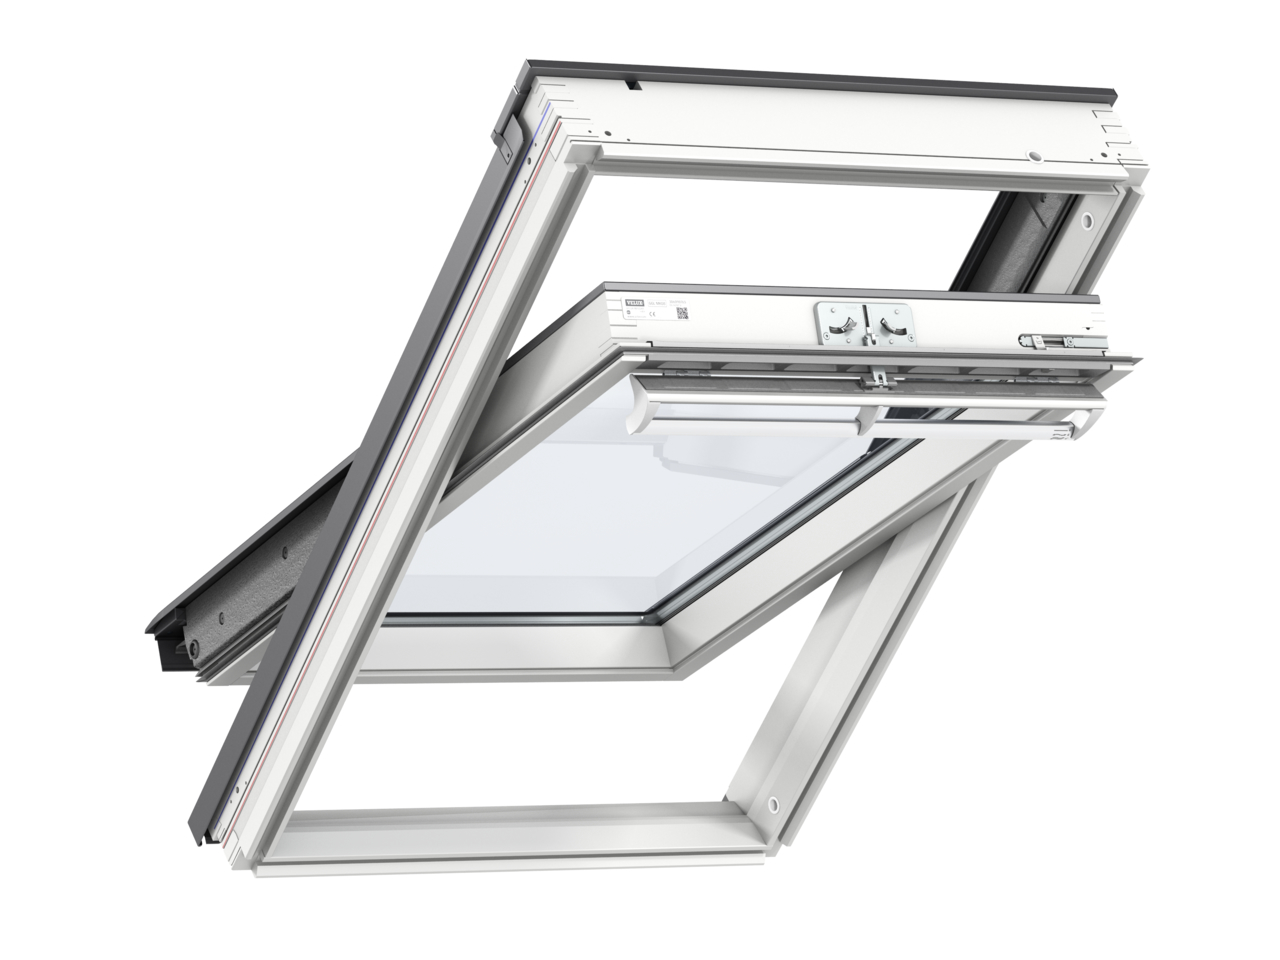 Velux GGL FK06 660 x 1180mm Centre Pivot Standard 70Pane Roof Window - White Painted